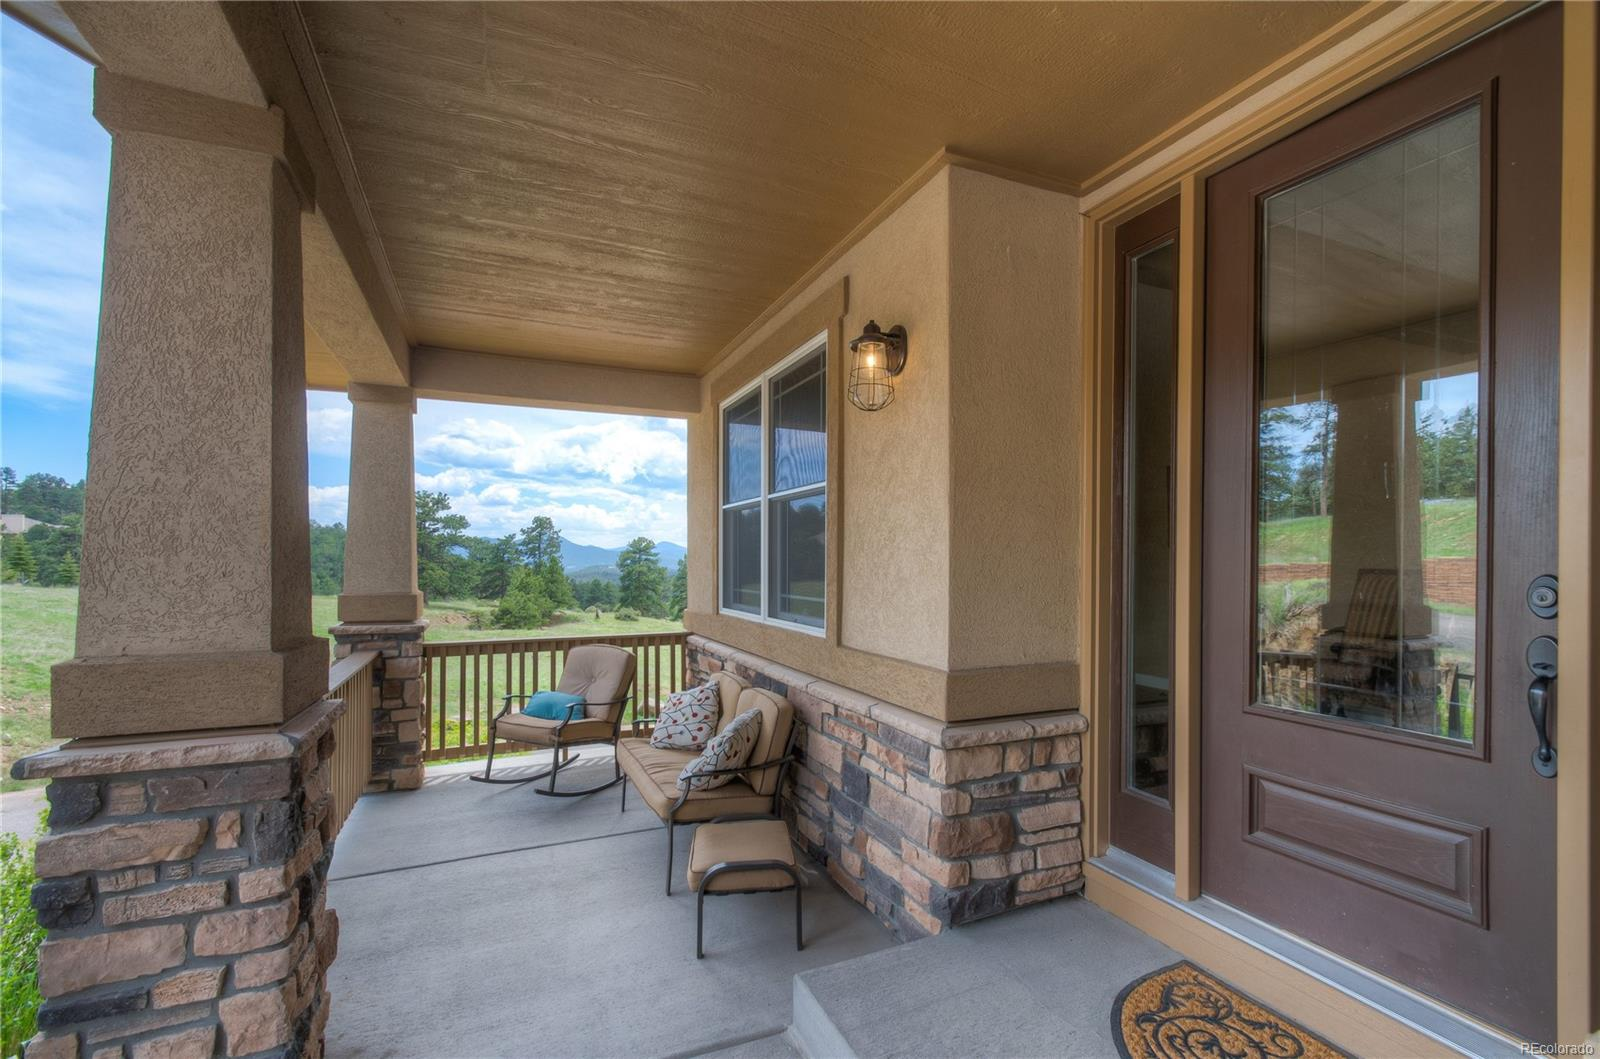 Enjoy The Views From Your Covered Front Porch